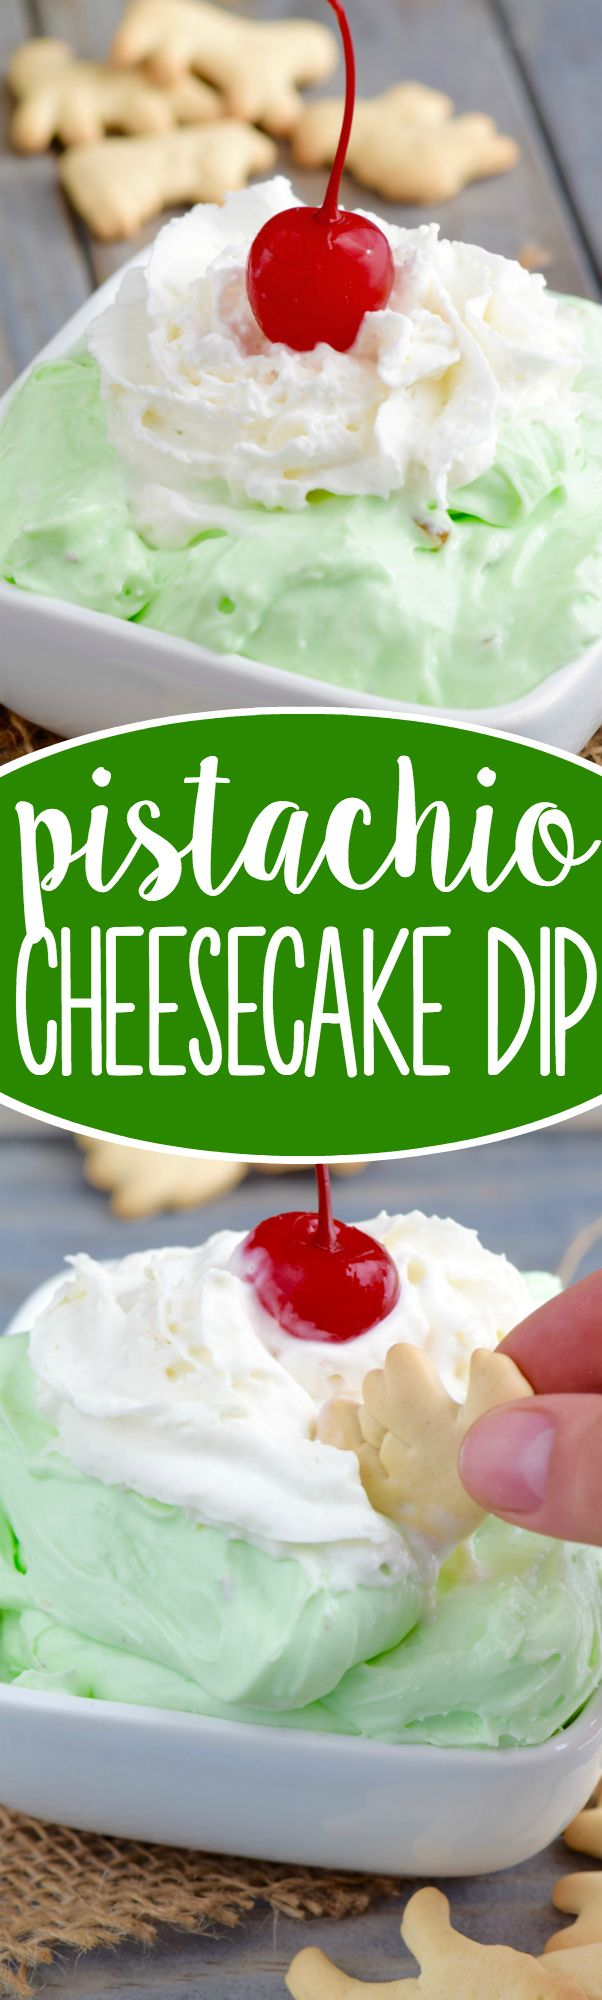 This Pistachio Cheesecake Dip comes together in minutes and is irresistible!